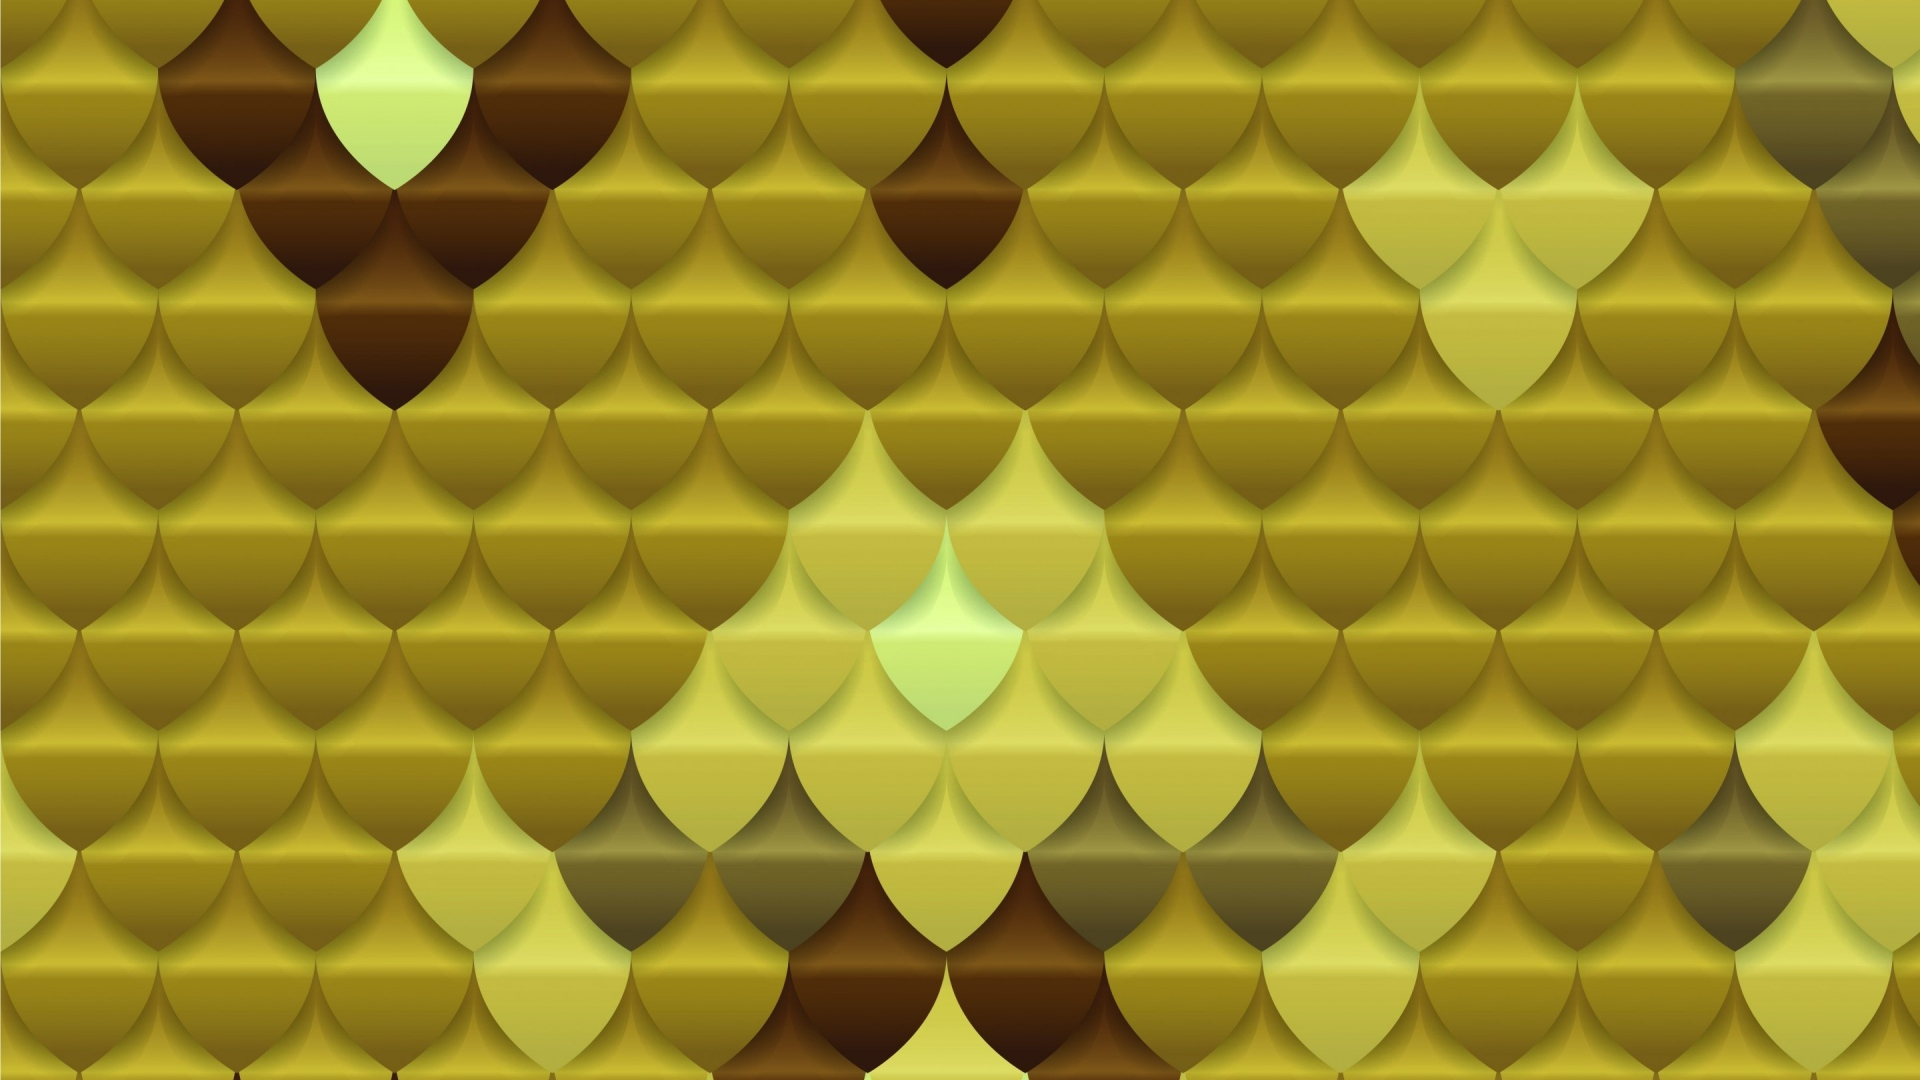 Download Wallpaper 1920x1080 Scales Gold Texture Full HD 1080p